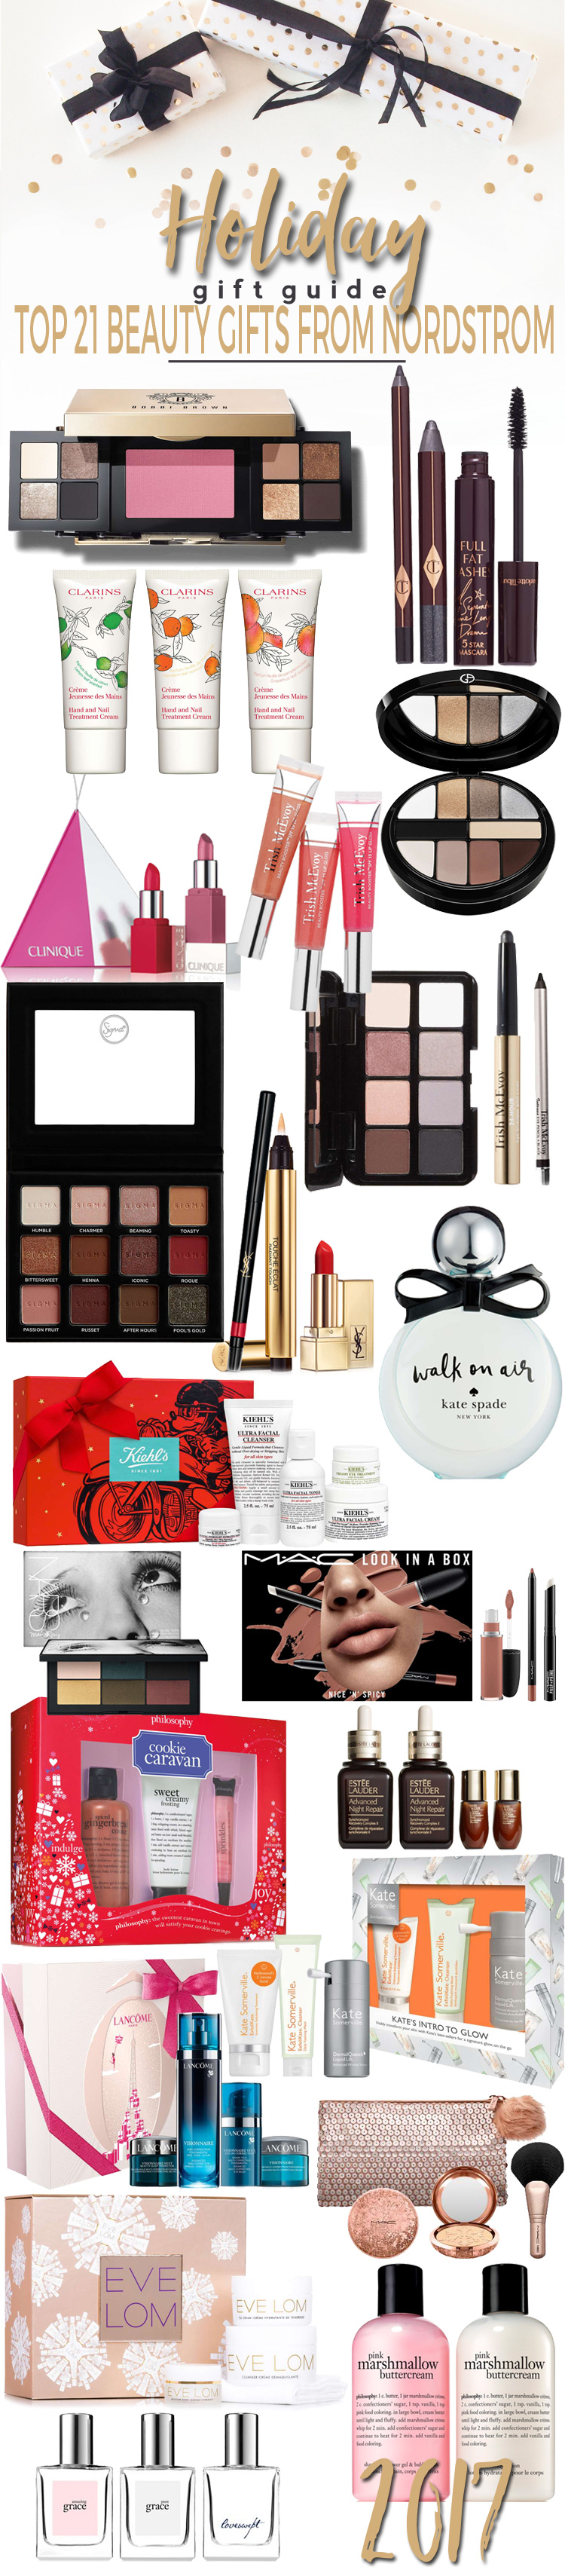 Top 21 Beauty Gifts from Nordstrom.